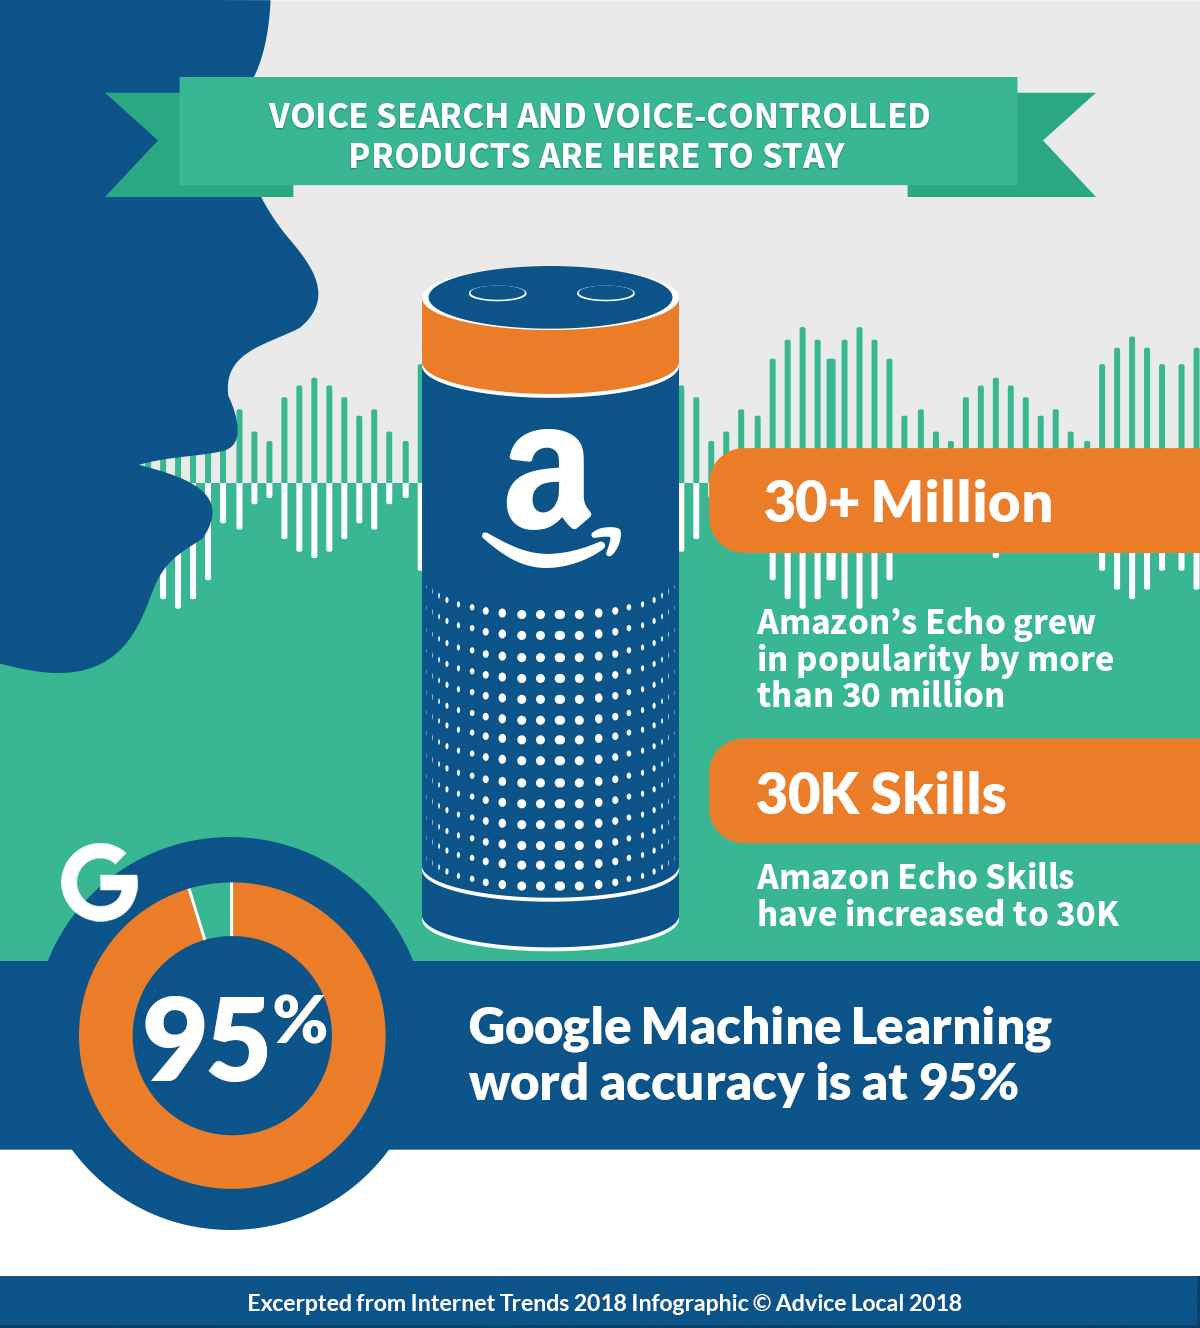 Internet Trends 2018 - Voice Search